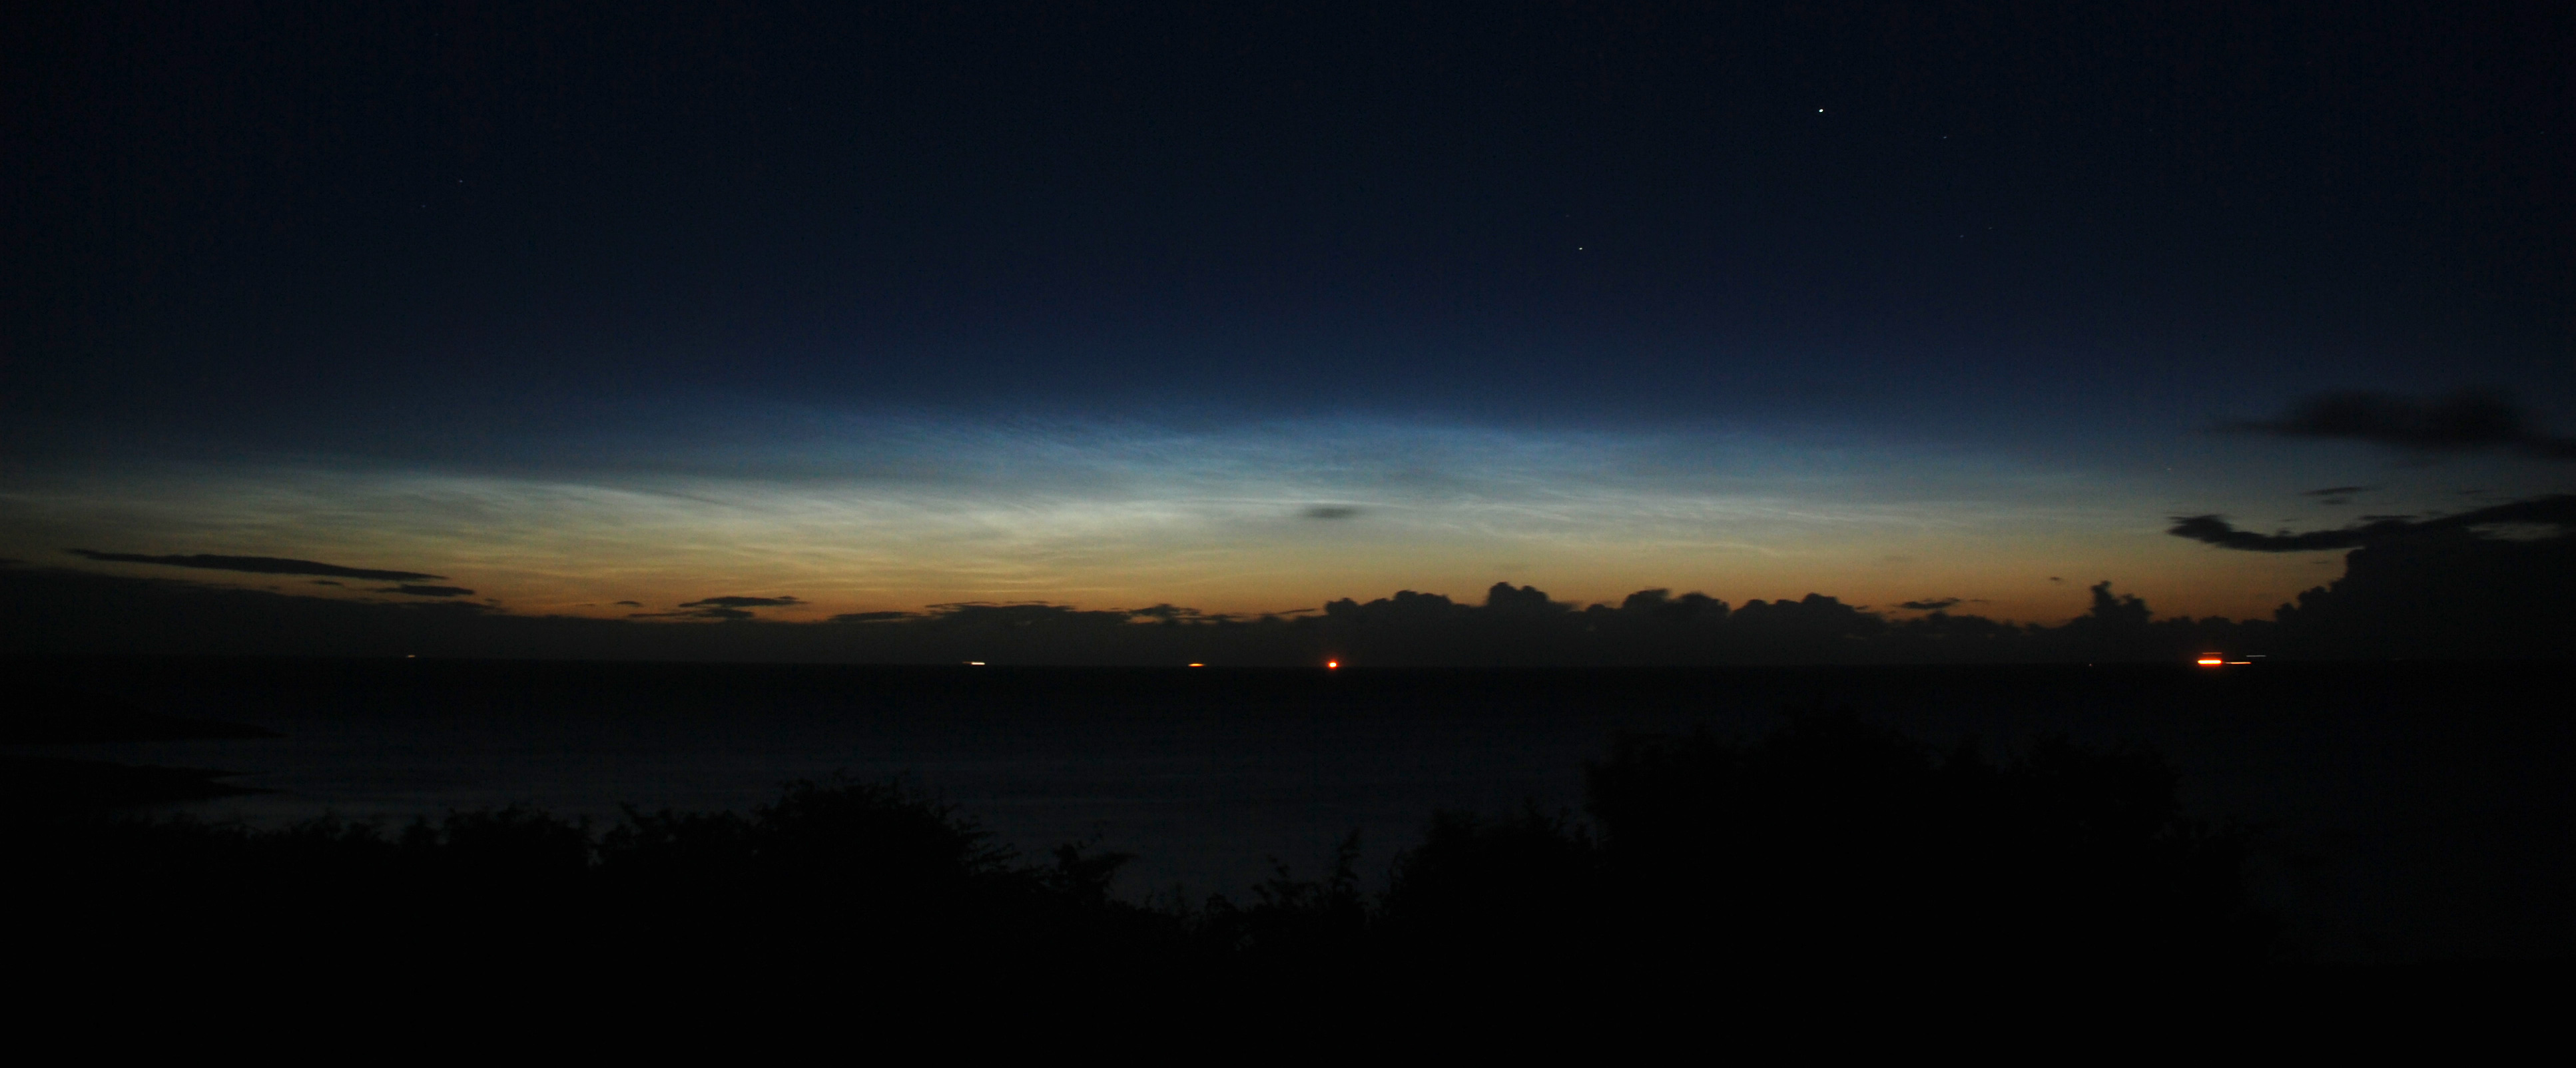 nlc_2016july02d01h30muts.jpg